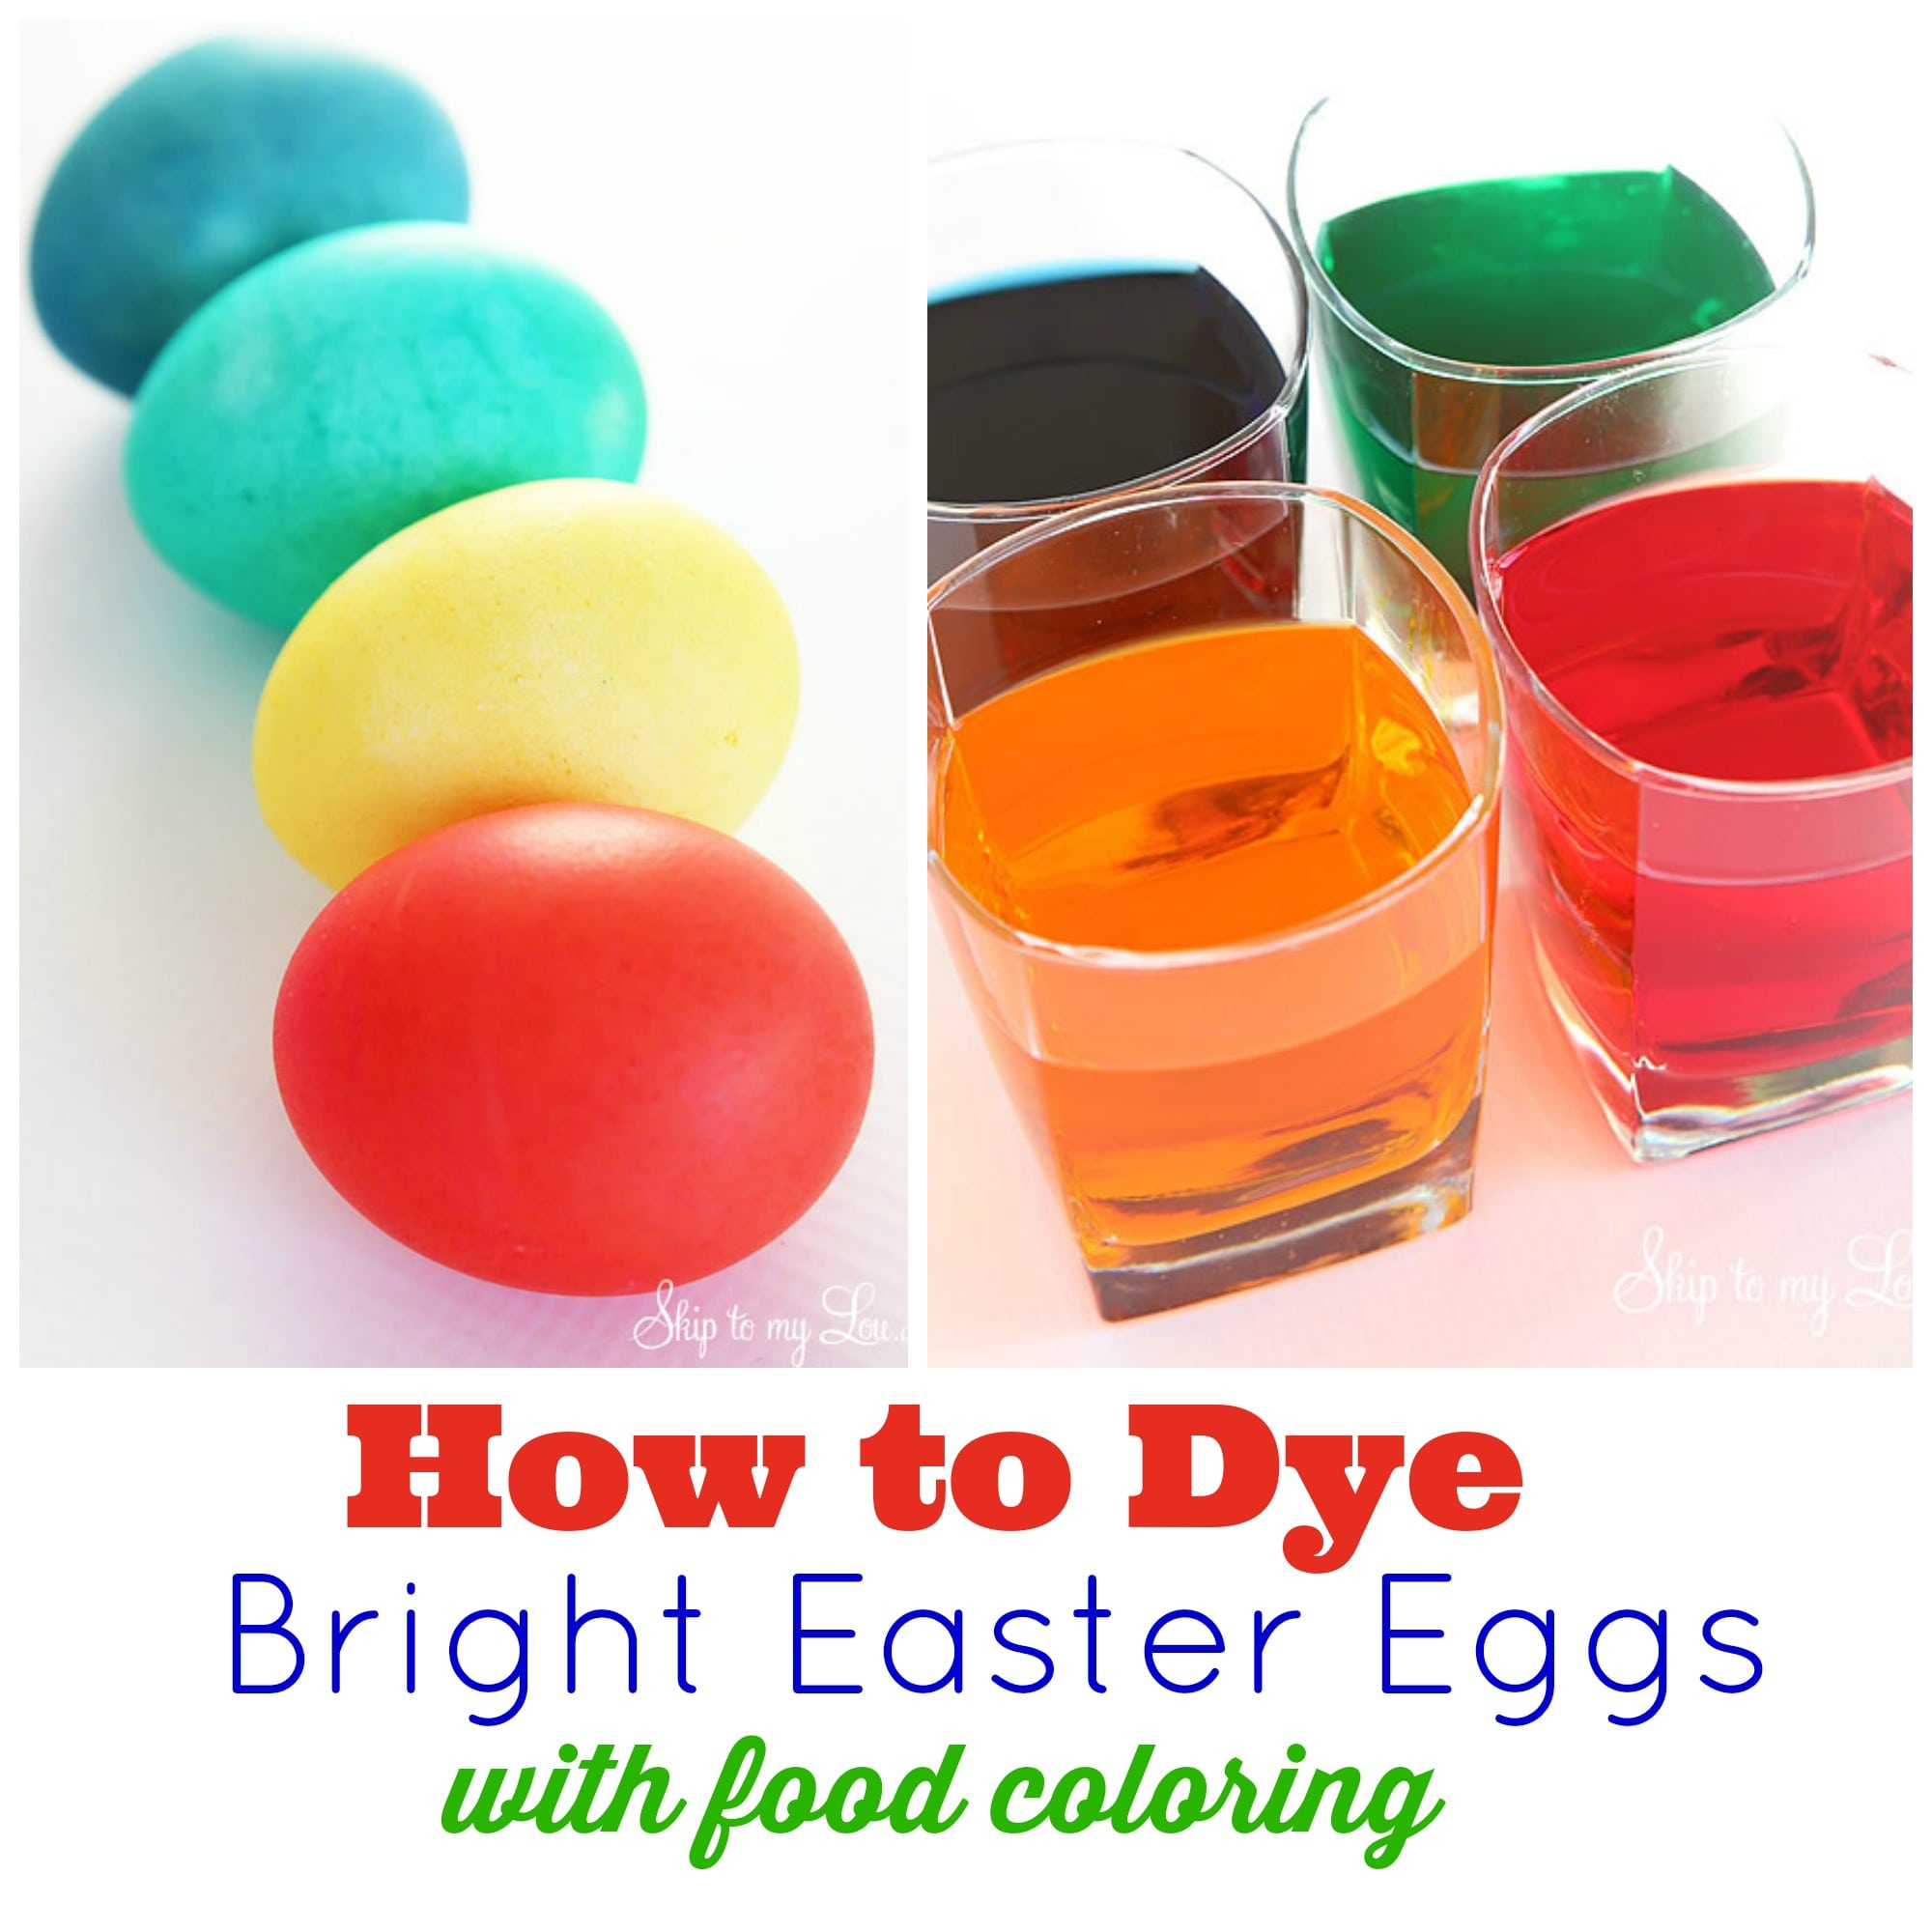 Dye Easter Eggs With Rice & Food Coloring It All Started, Coloring